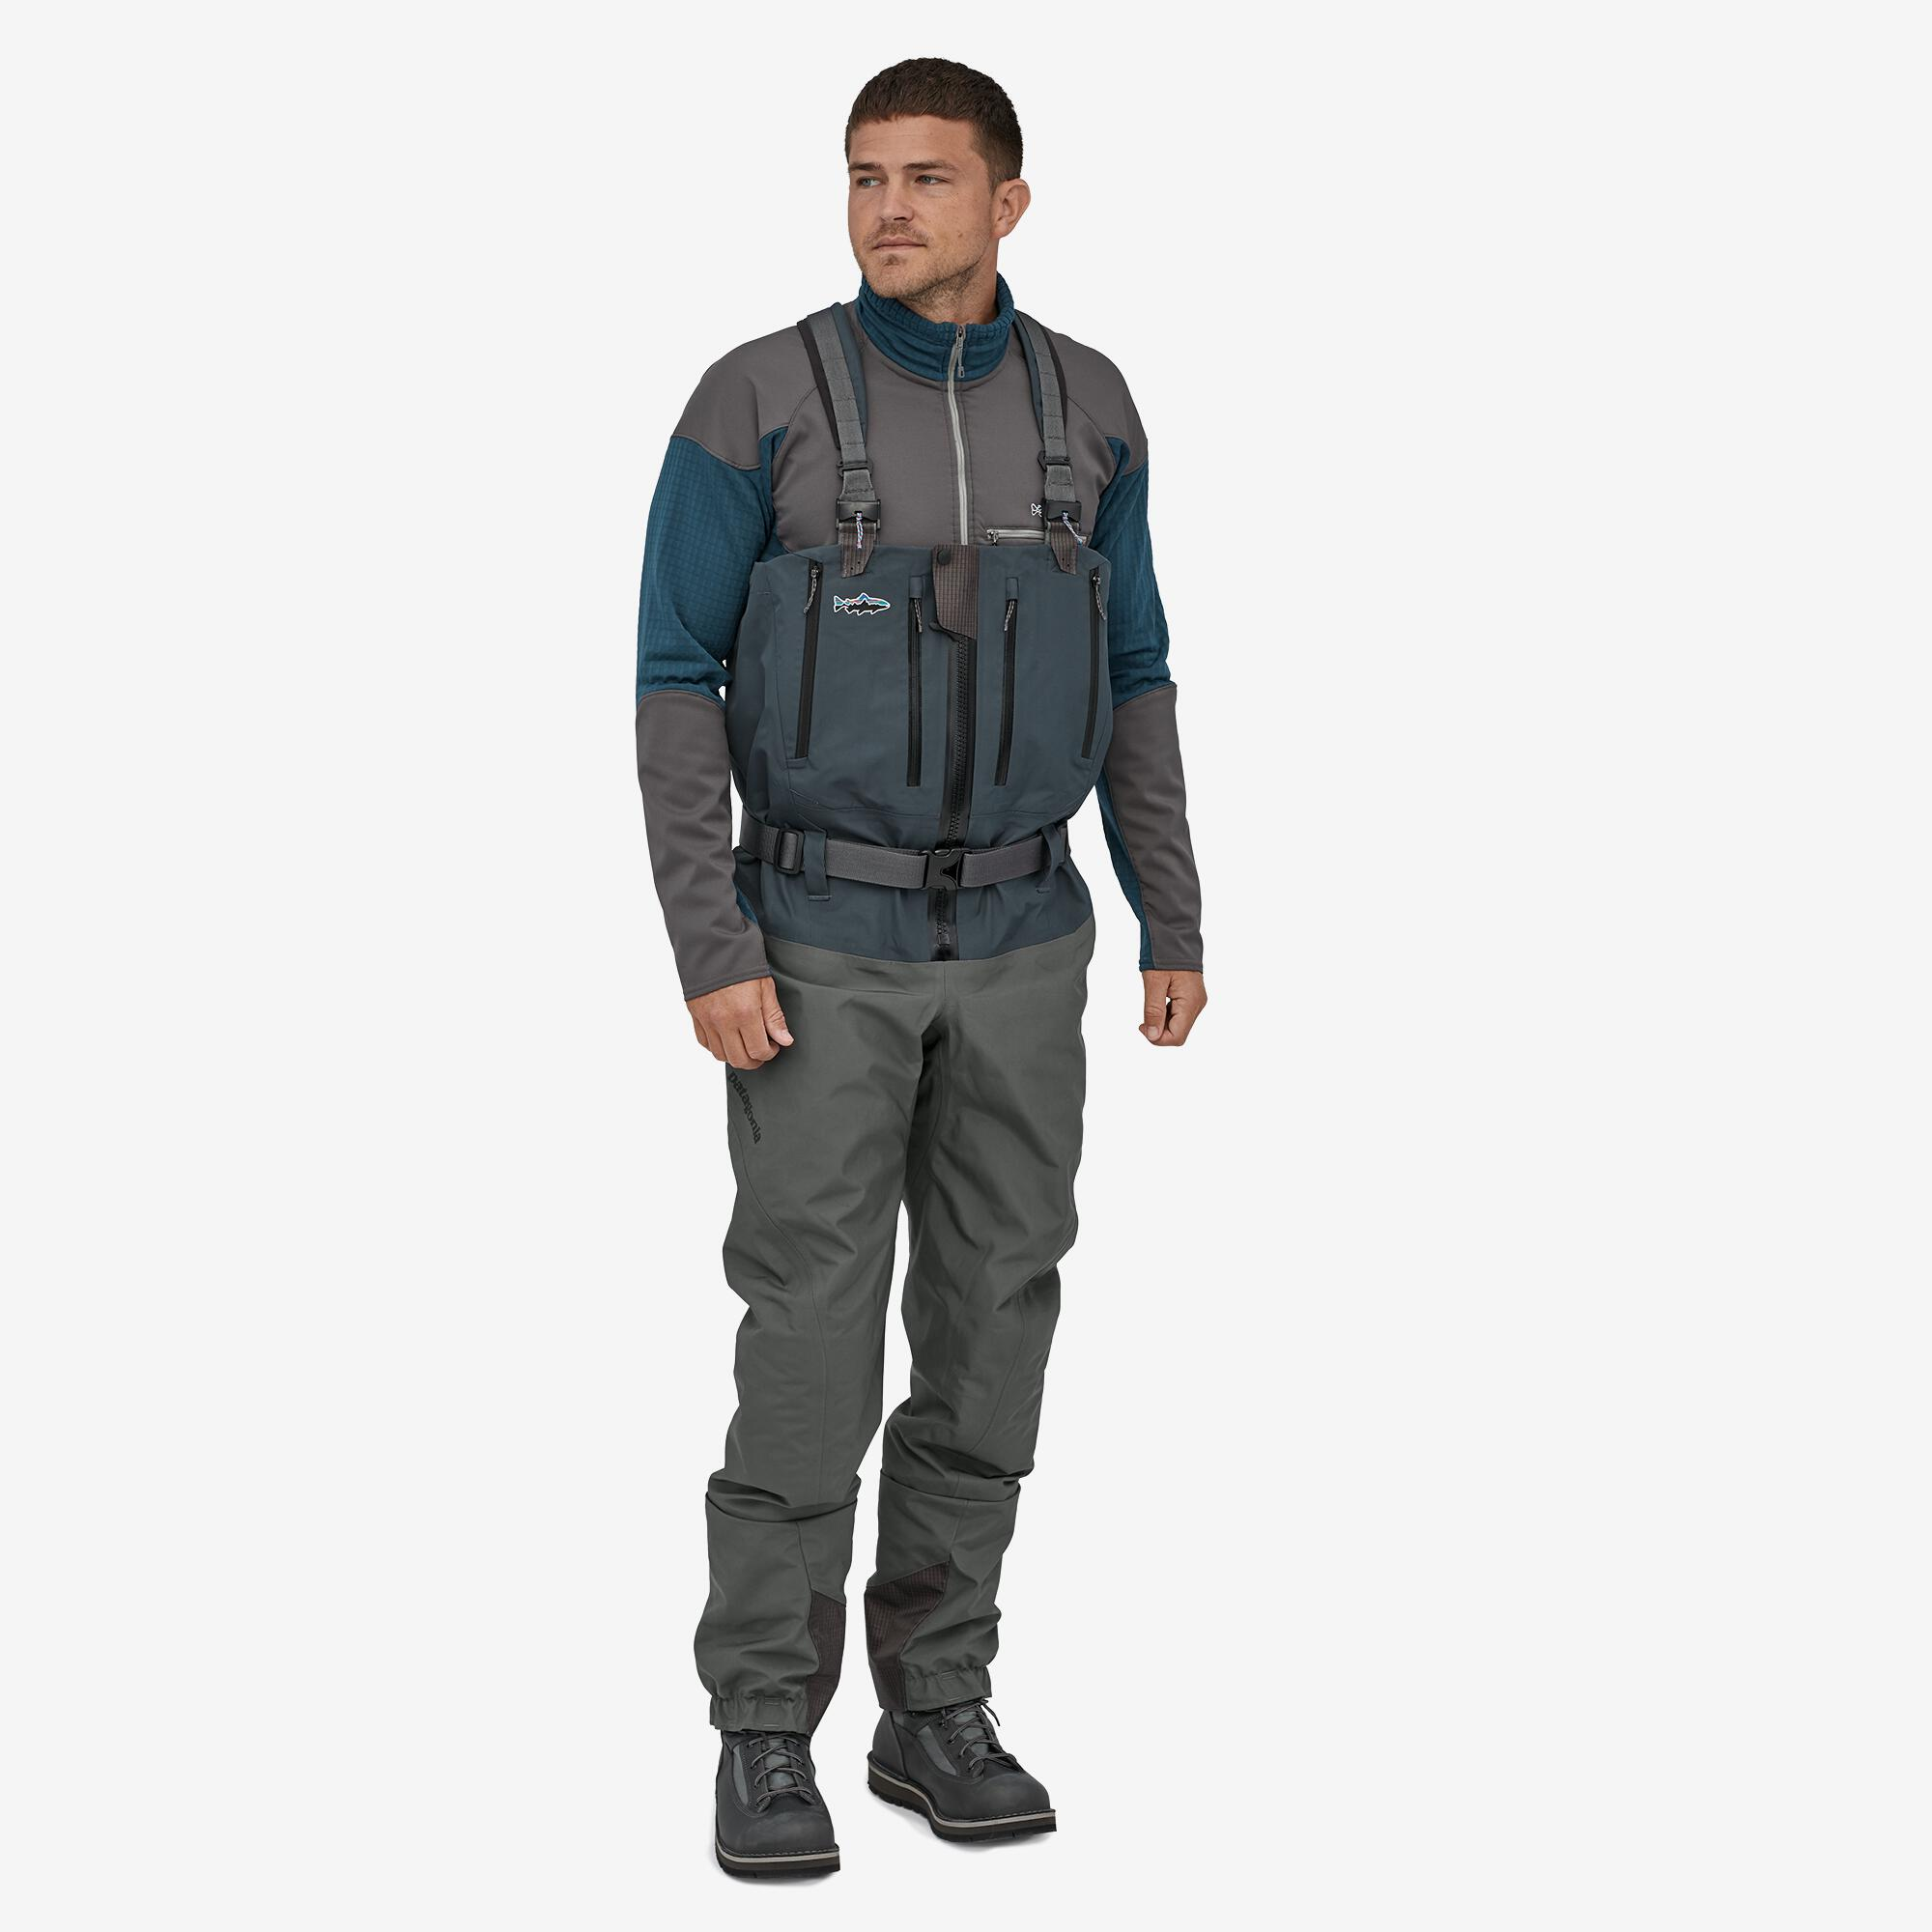 Patagonia_Swiftcurrent_waders